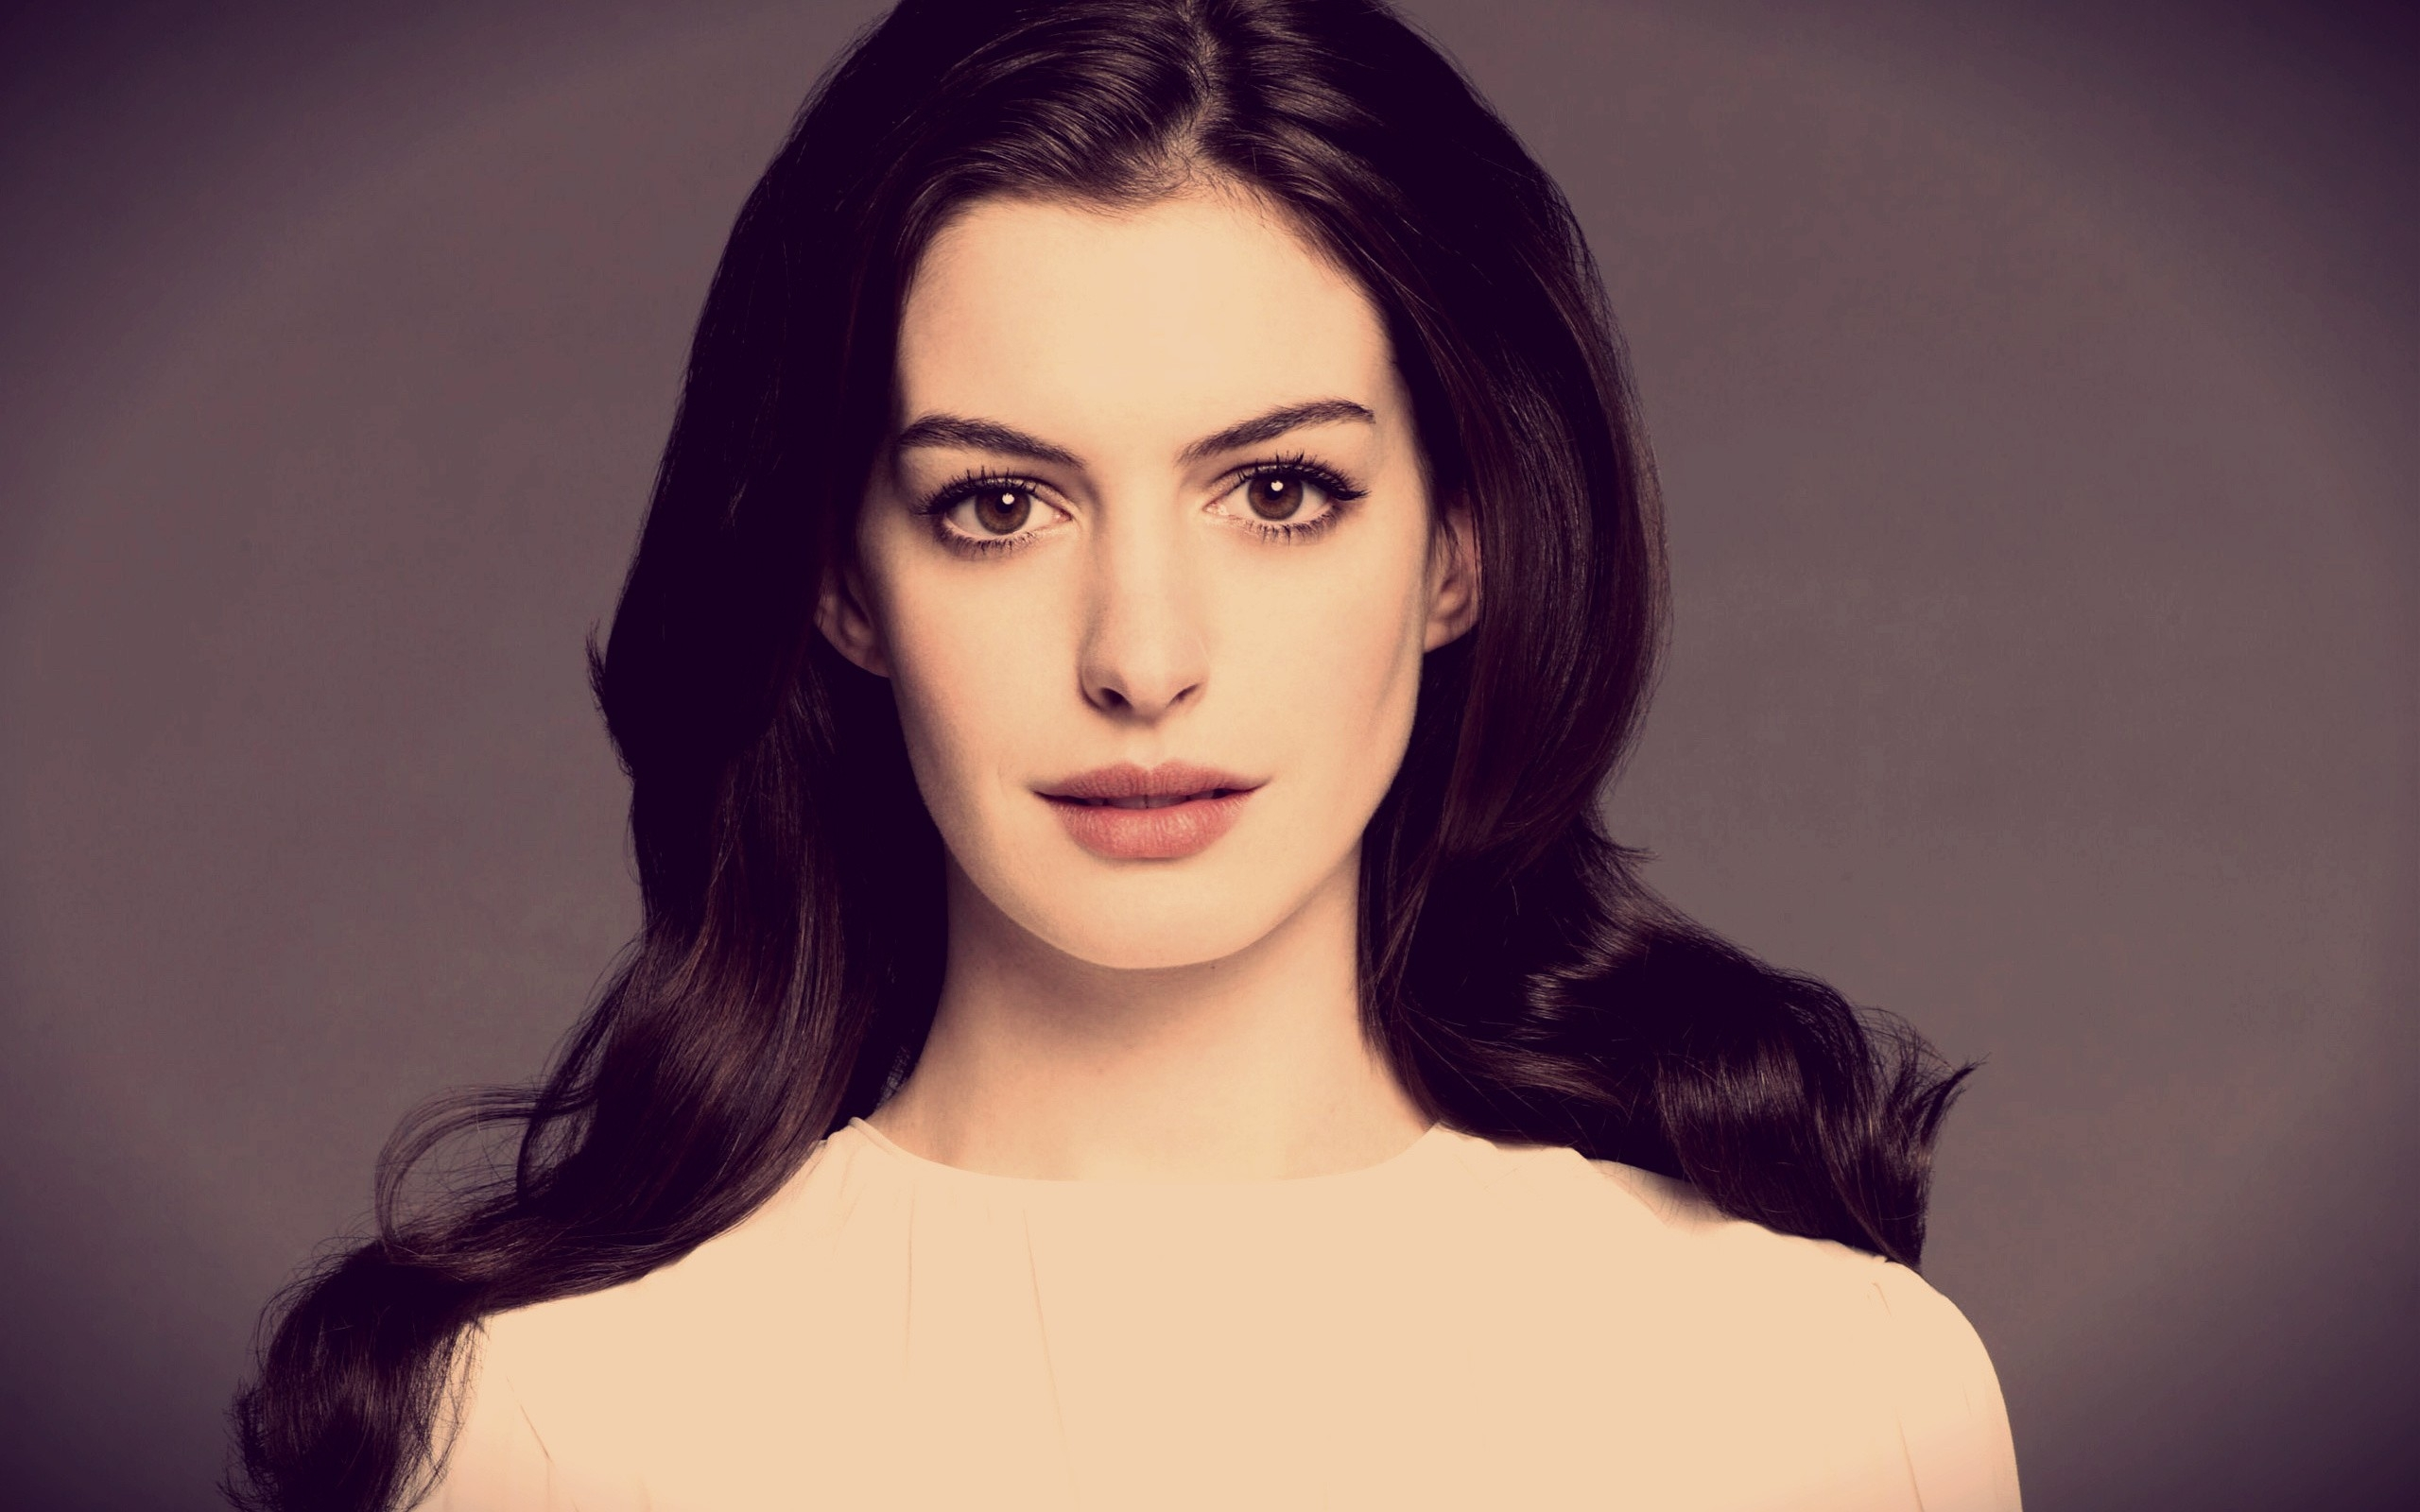 Preview wallpaper anne hathaway, brunette, actress, face 2560x1600